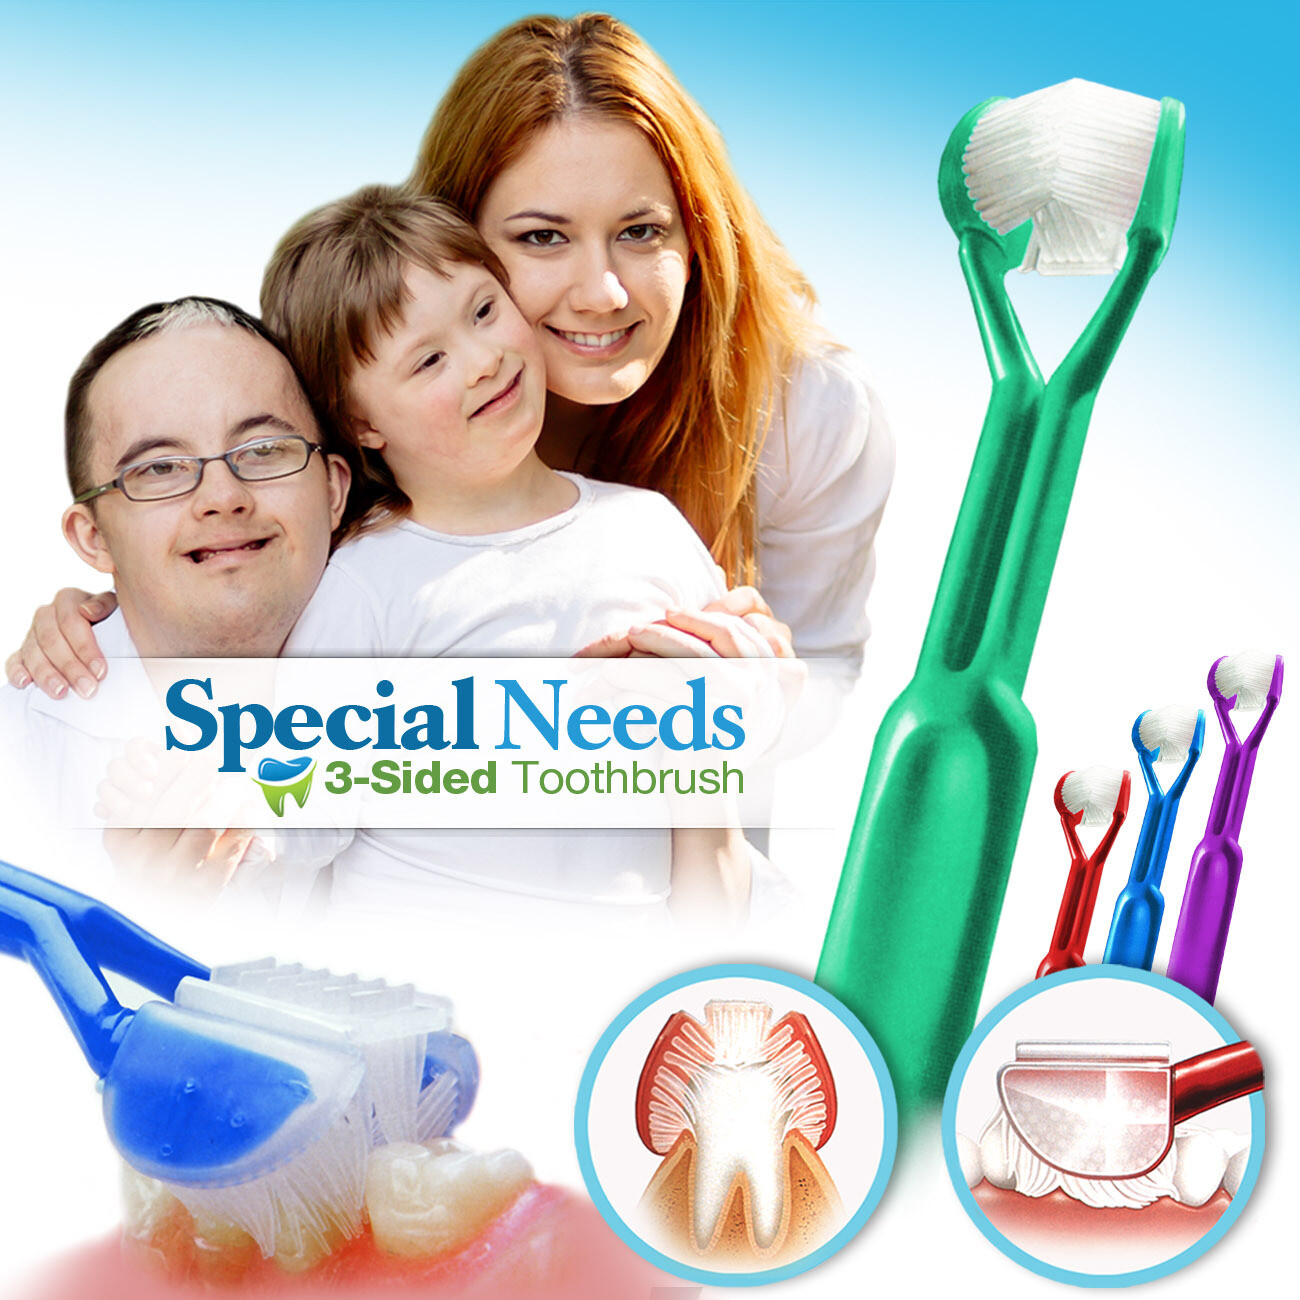 4-PK: DenTrust 3-Sided Toothbrush :: Caregivers & Assisted Brushing for Special Needs :: Fast, Easy & More Effective :: Complete Dental Care  for Autism ASD